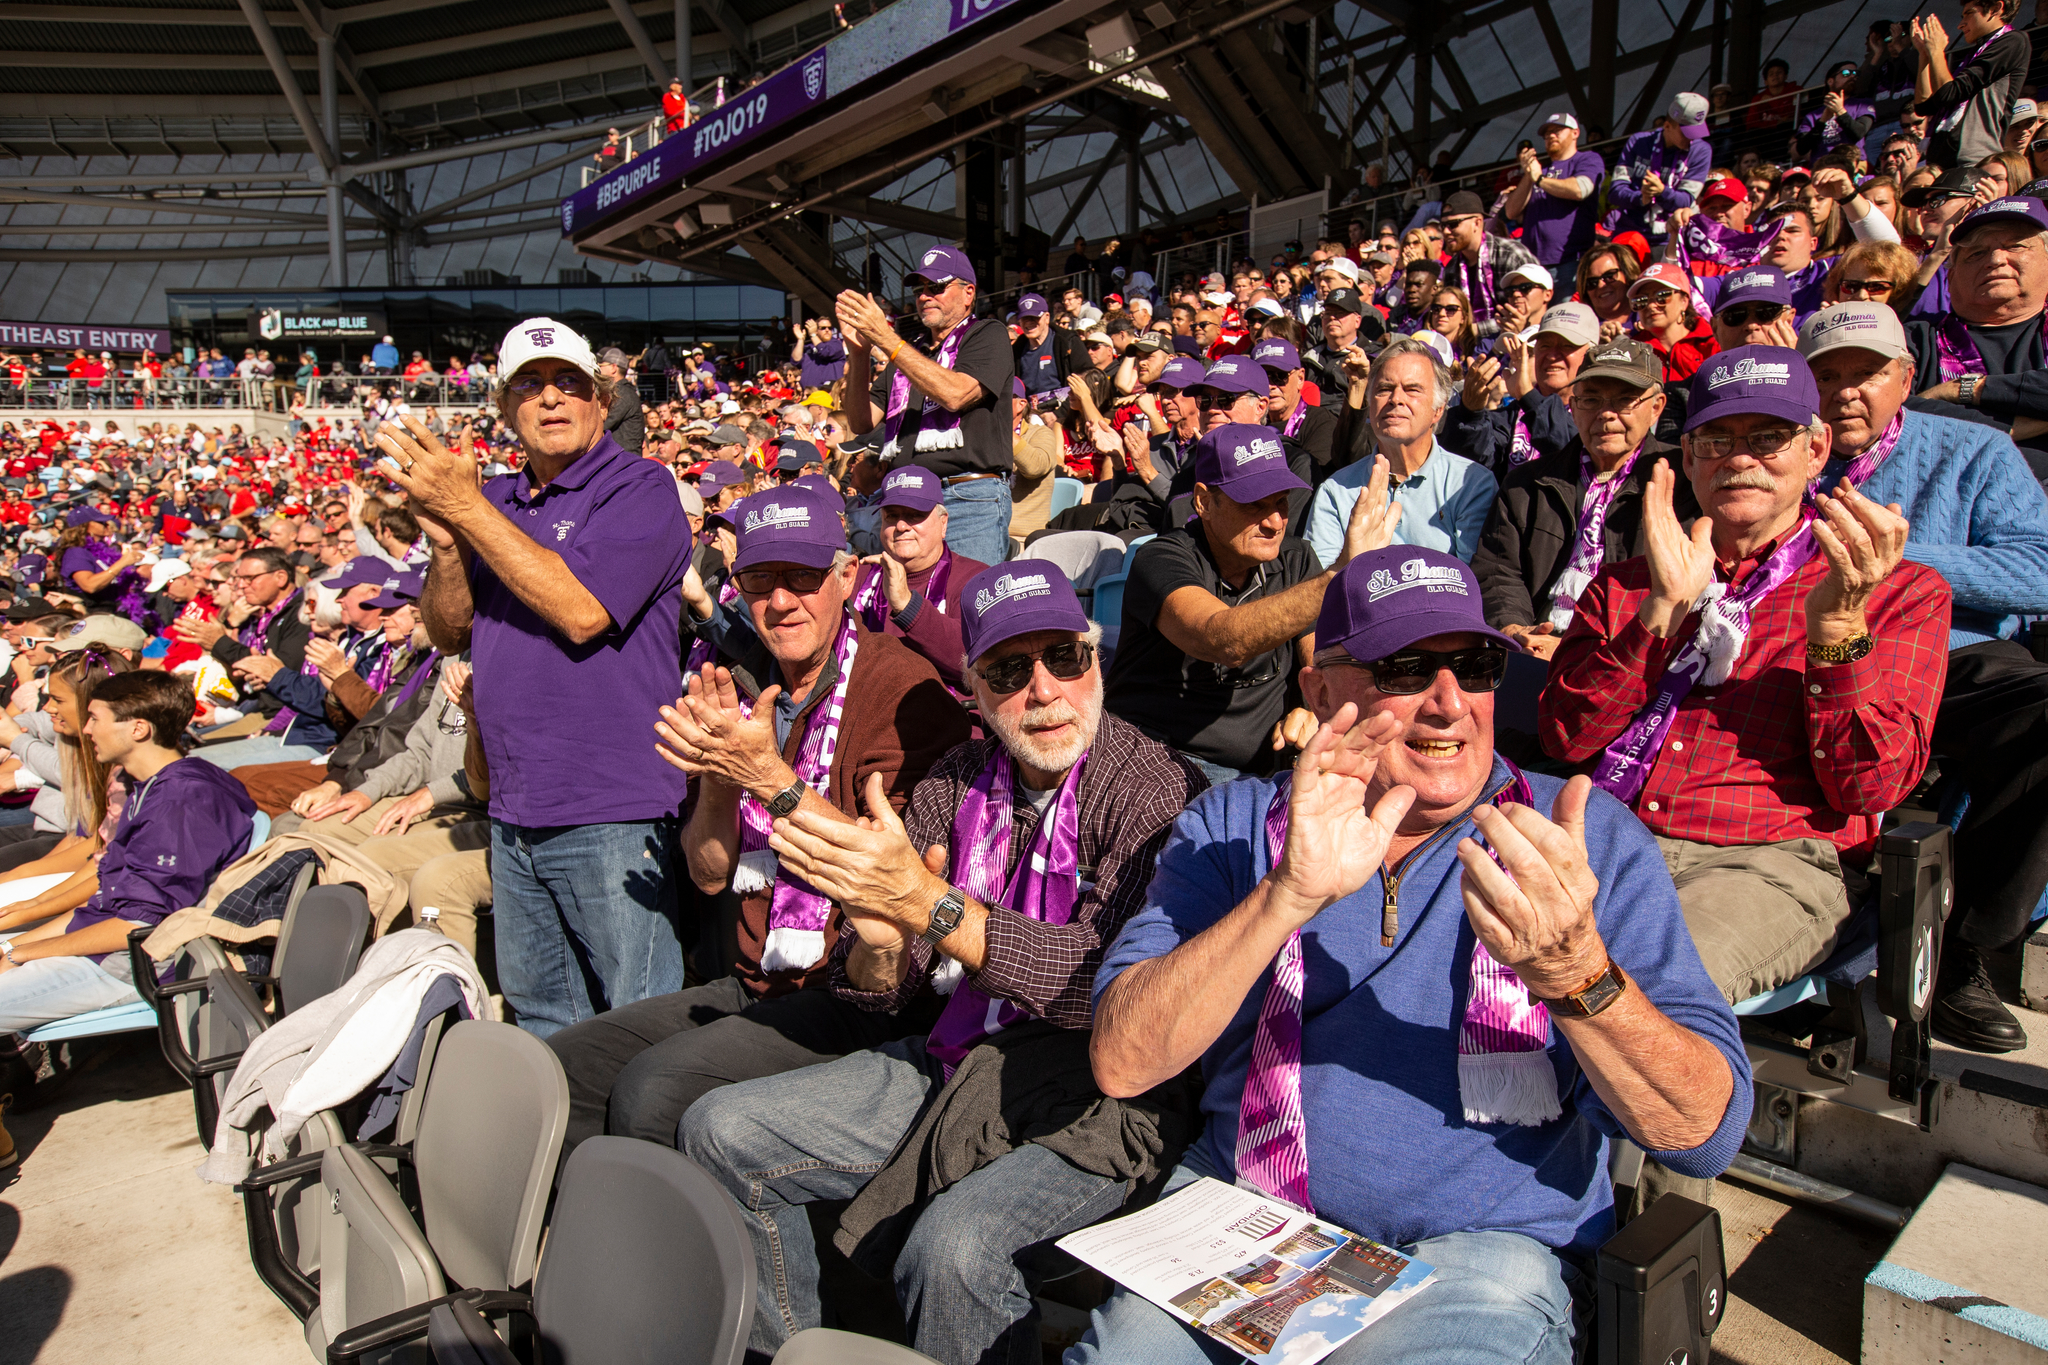 graduates of the class of 1969 celebrate at the 2019 Tommie-Johnnie football game